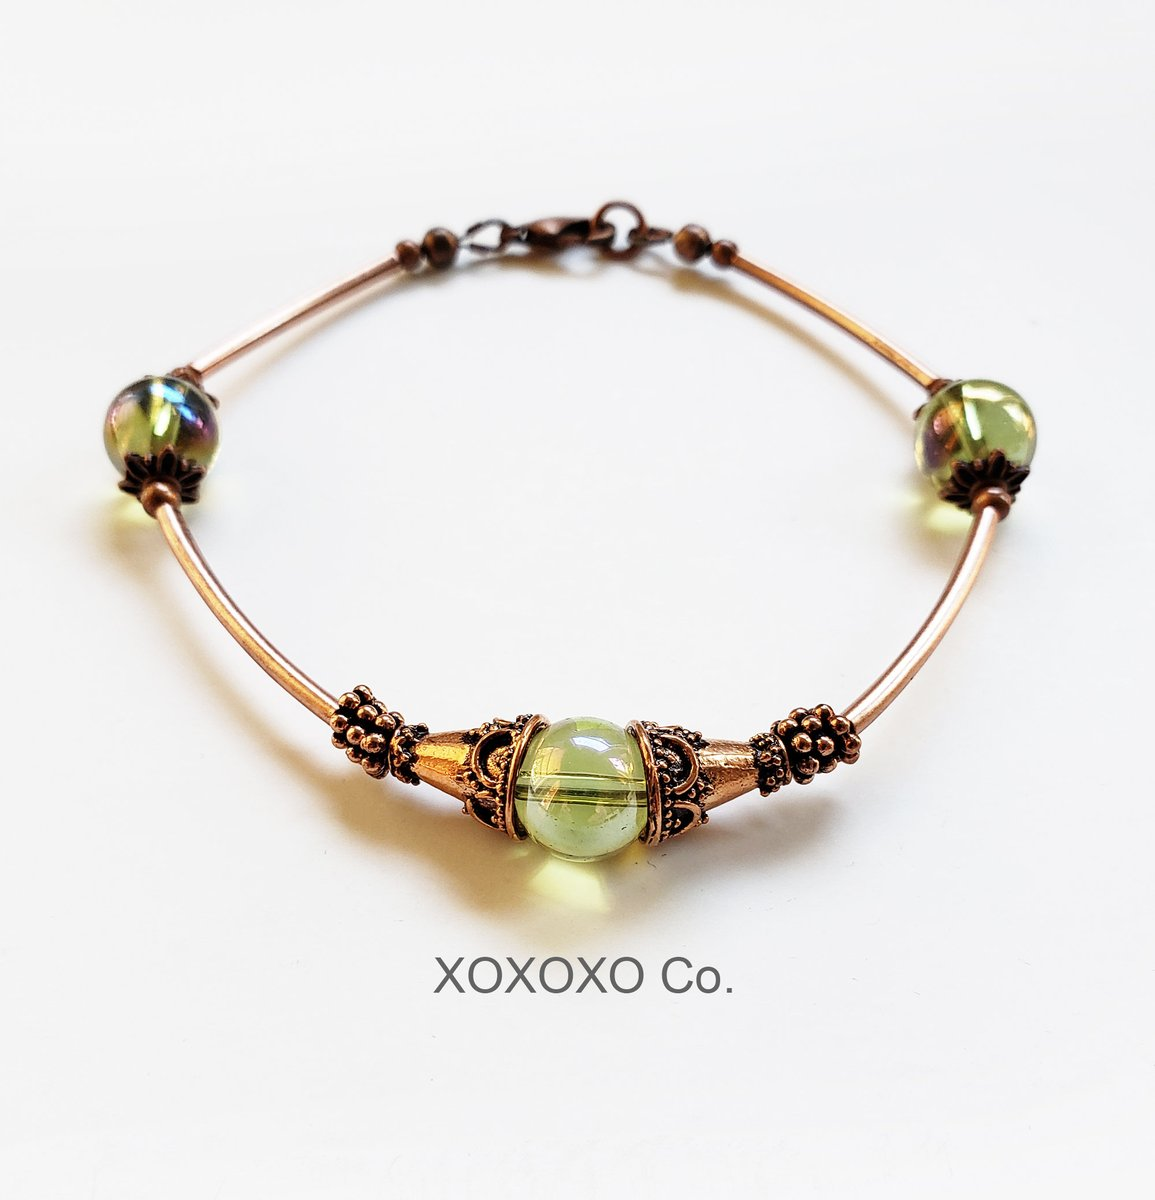 Copper Bracelet with AV Green Glass Beads and Copper Tube Beads  #handmade #giftsforher #jewelryblogger #handmadejewelry #shopsmall #fashion #Etsy #style #christmasgifts